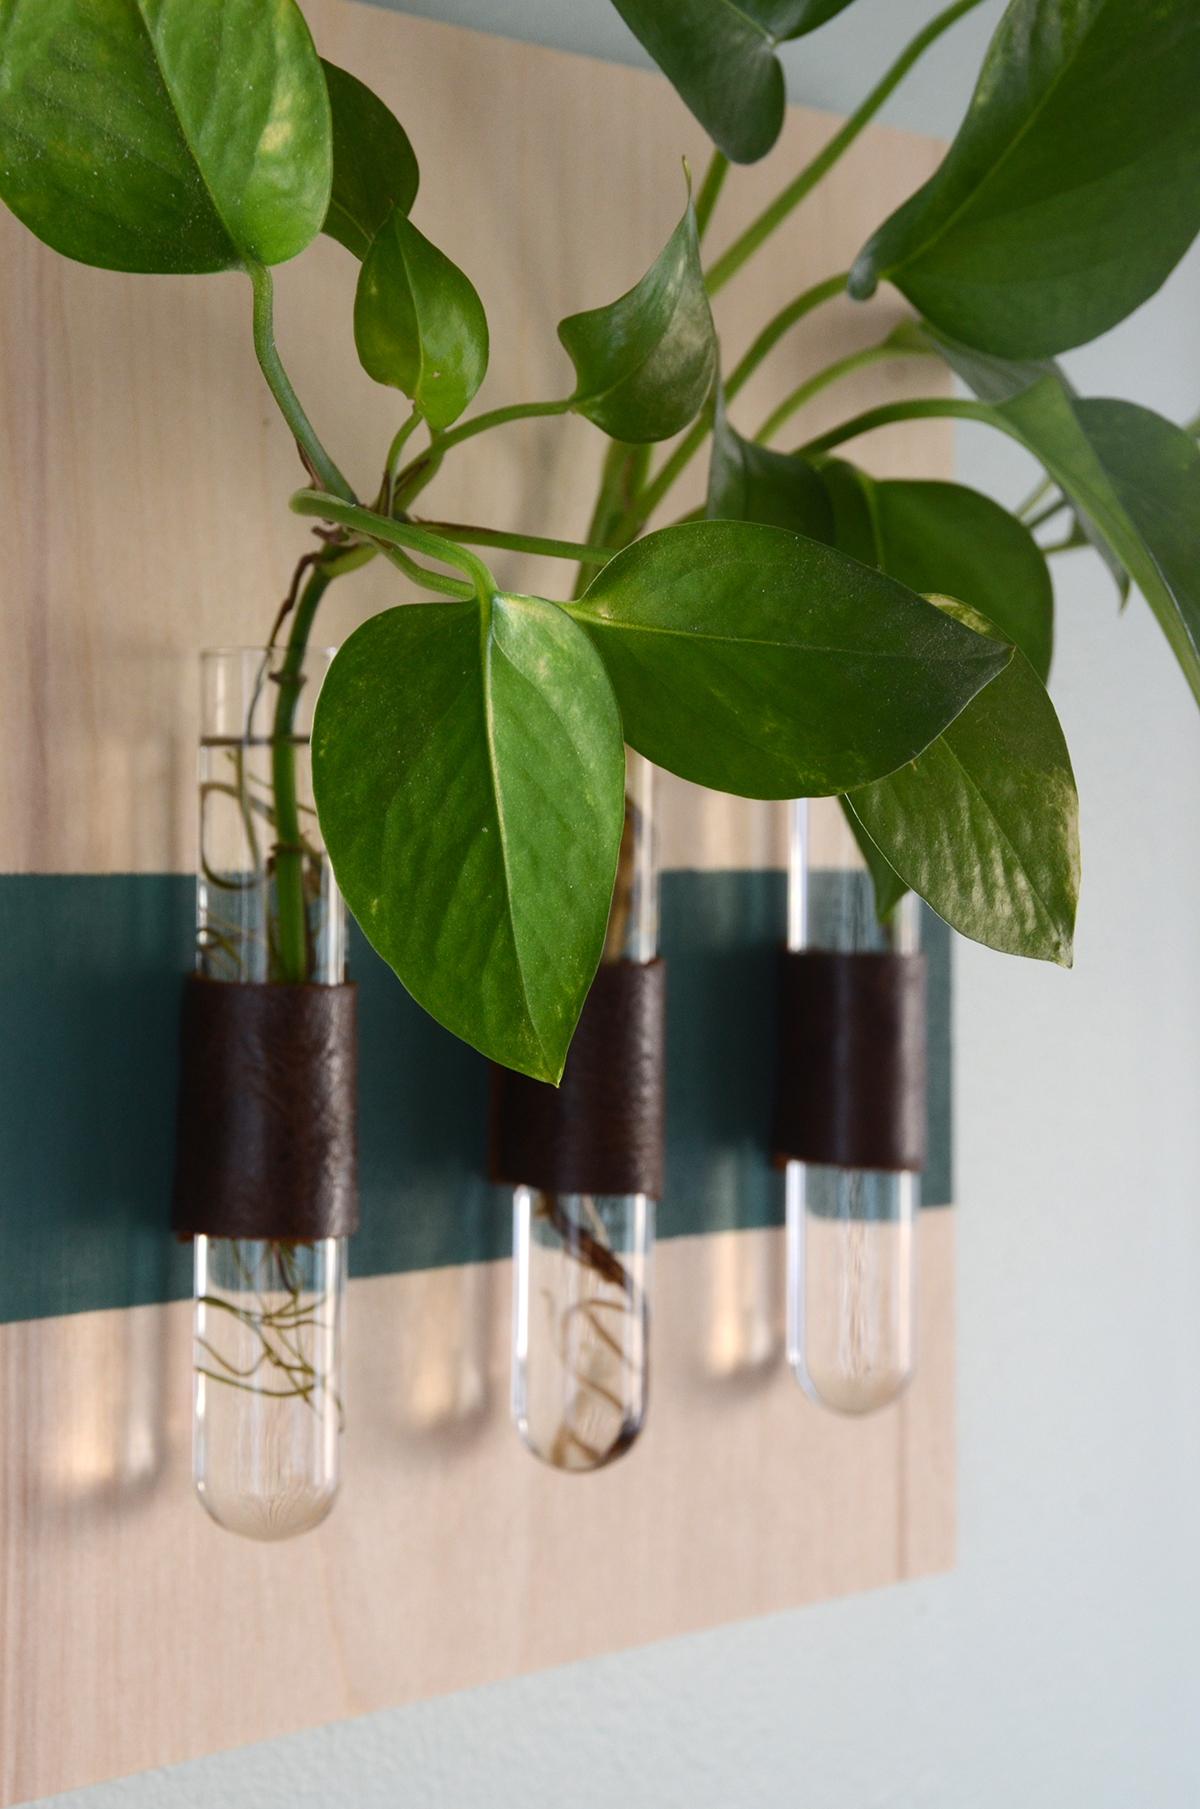 DIY wall mounted test tube vases using leather